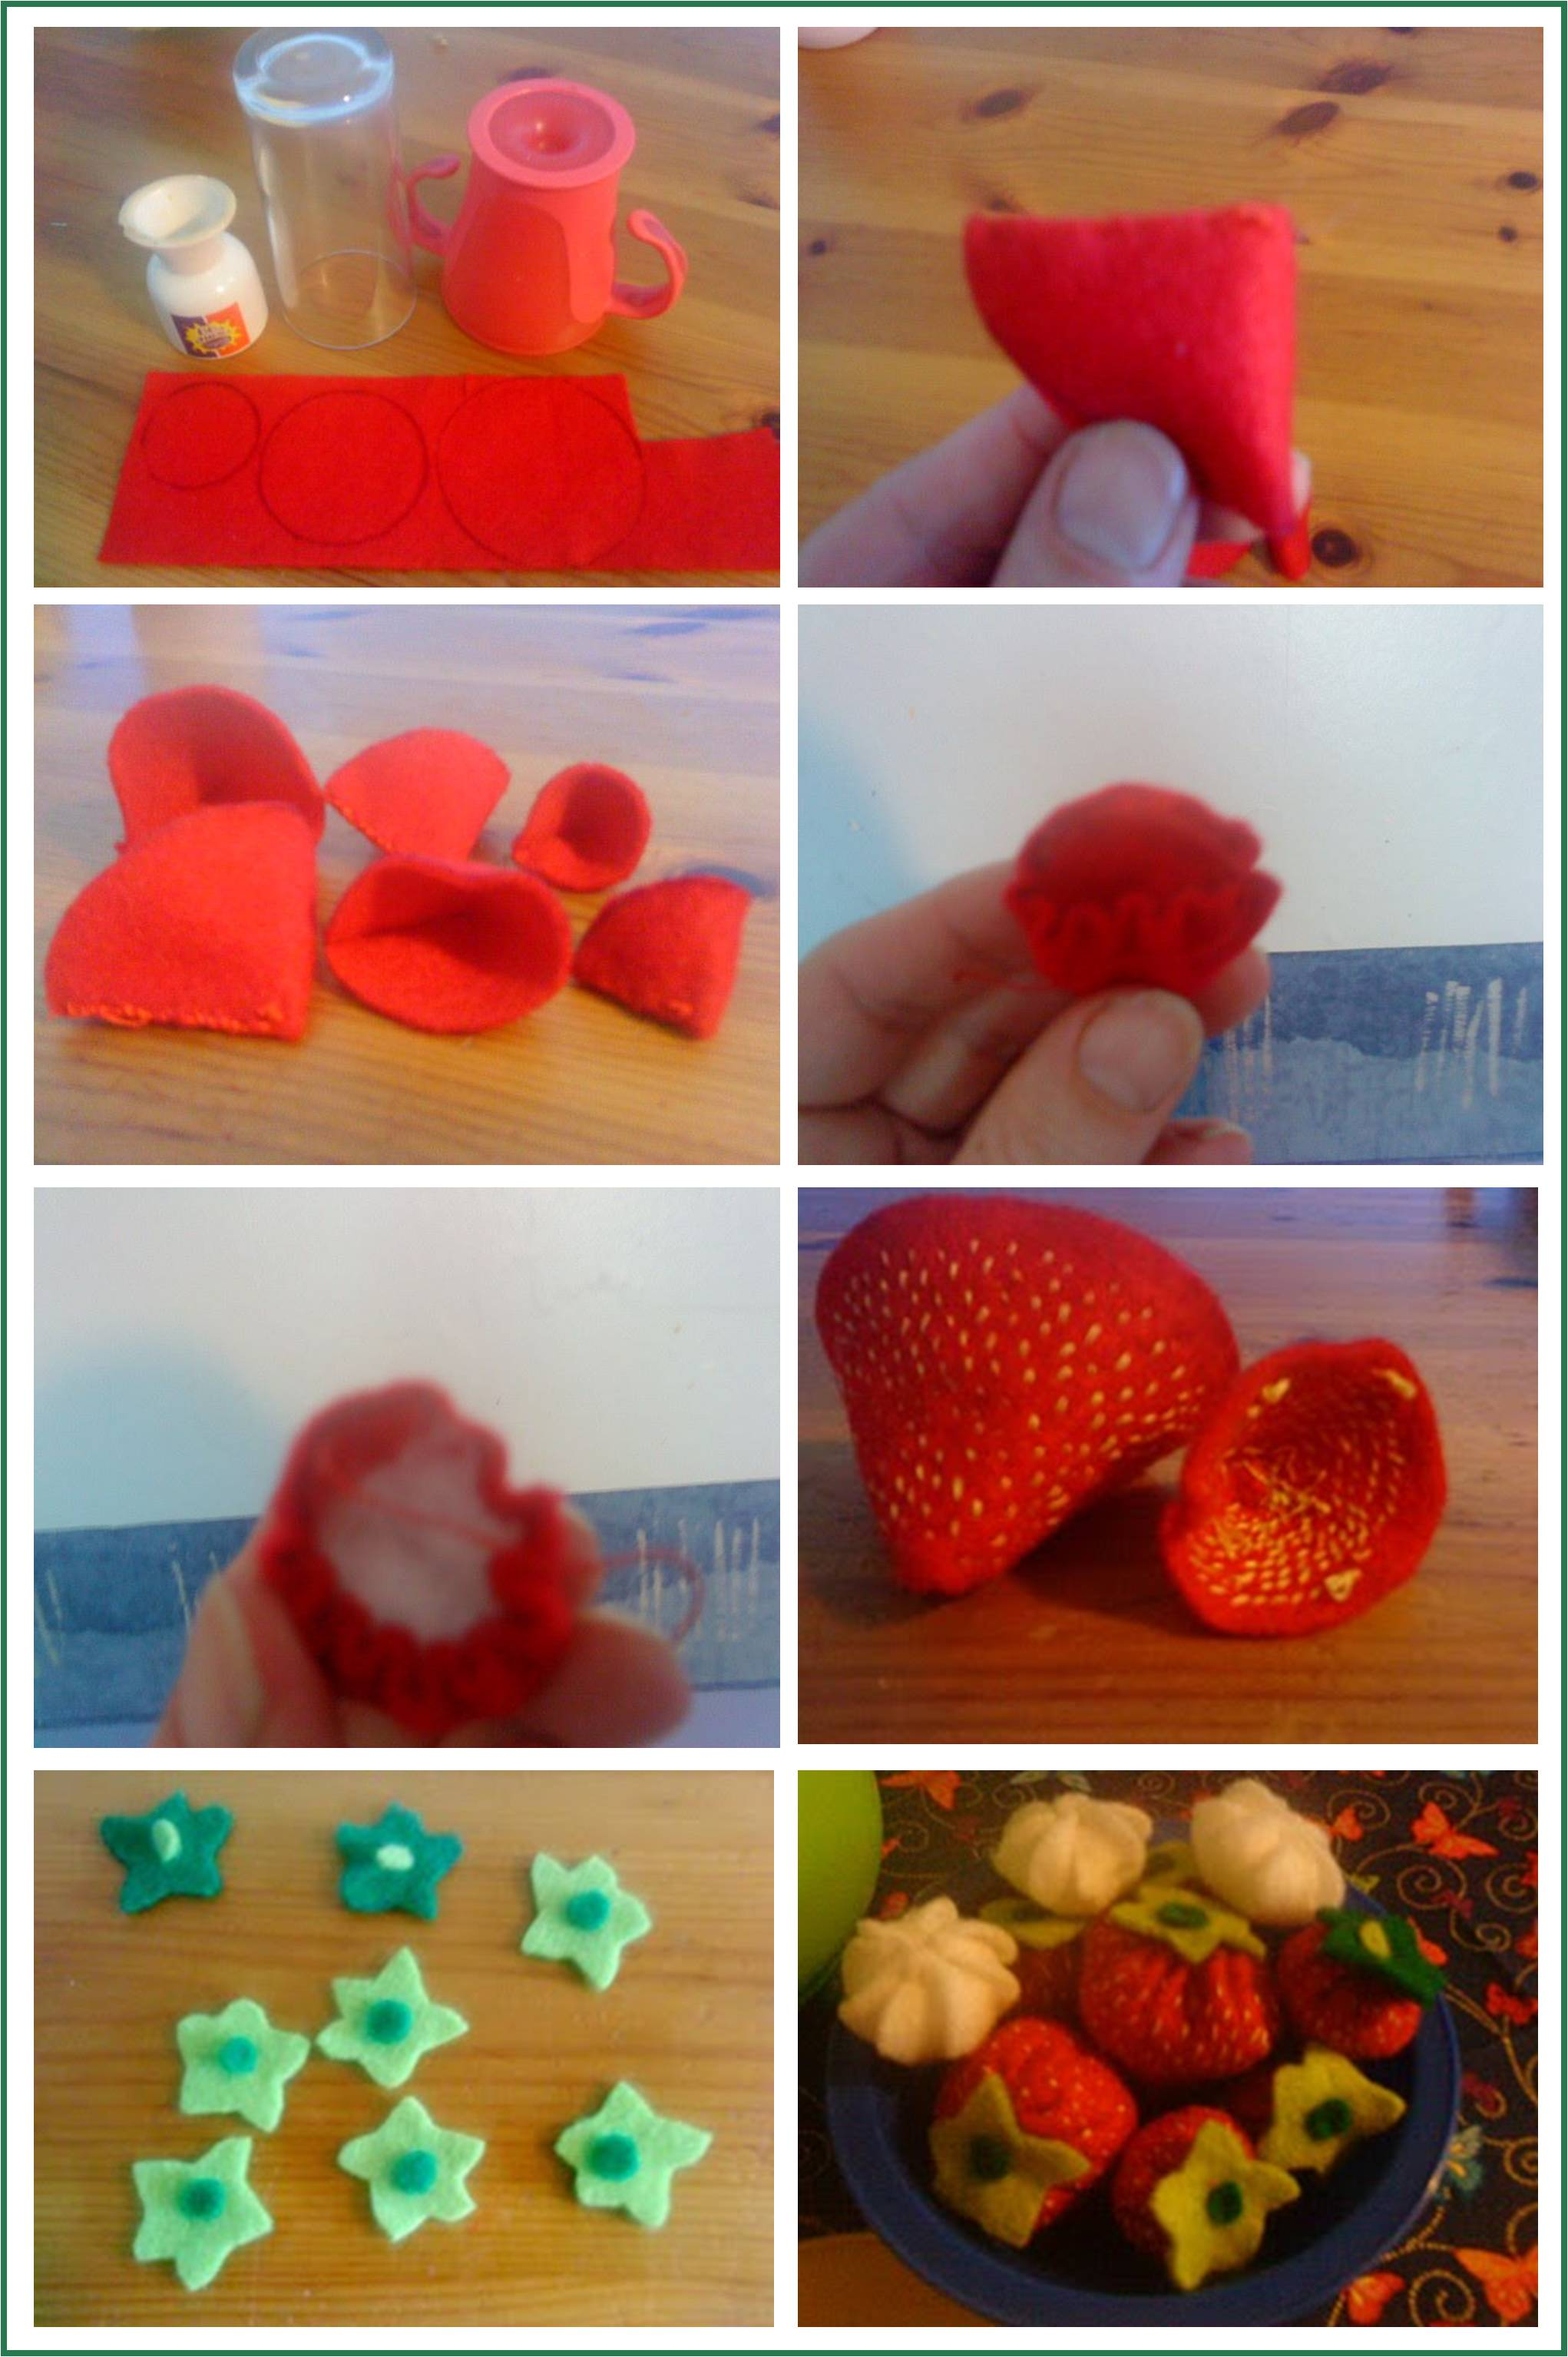 felt strawberries